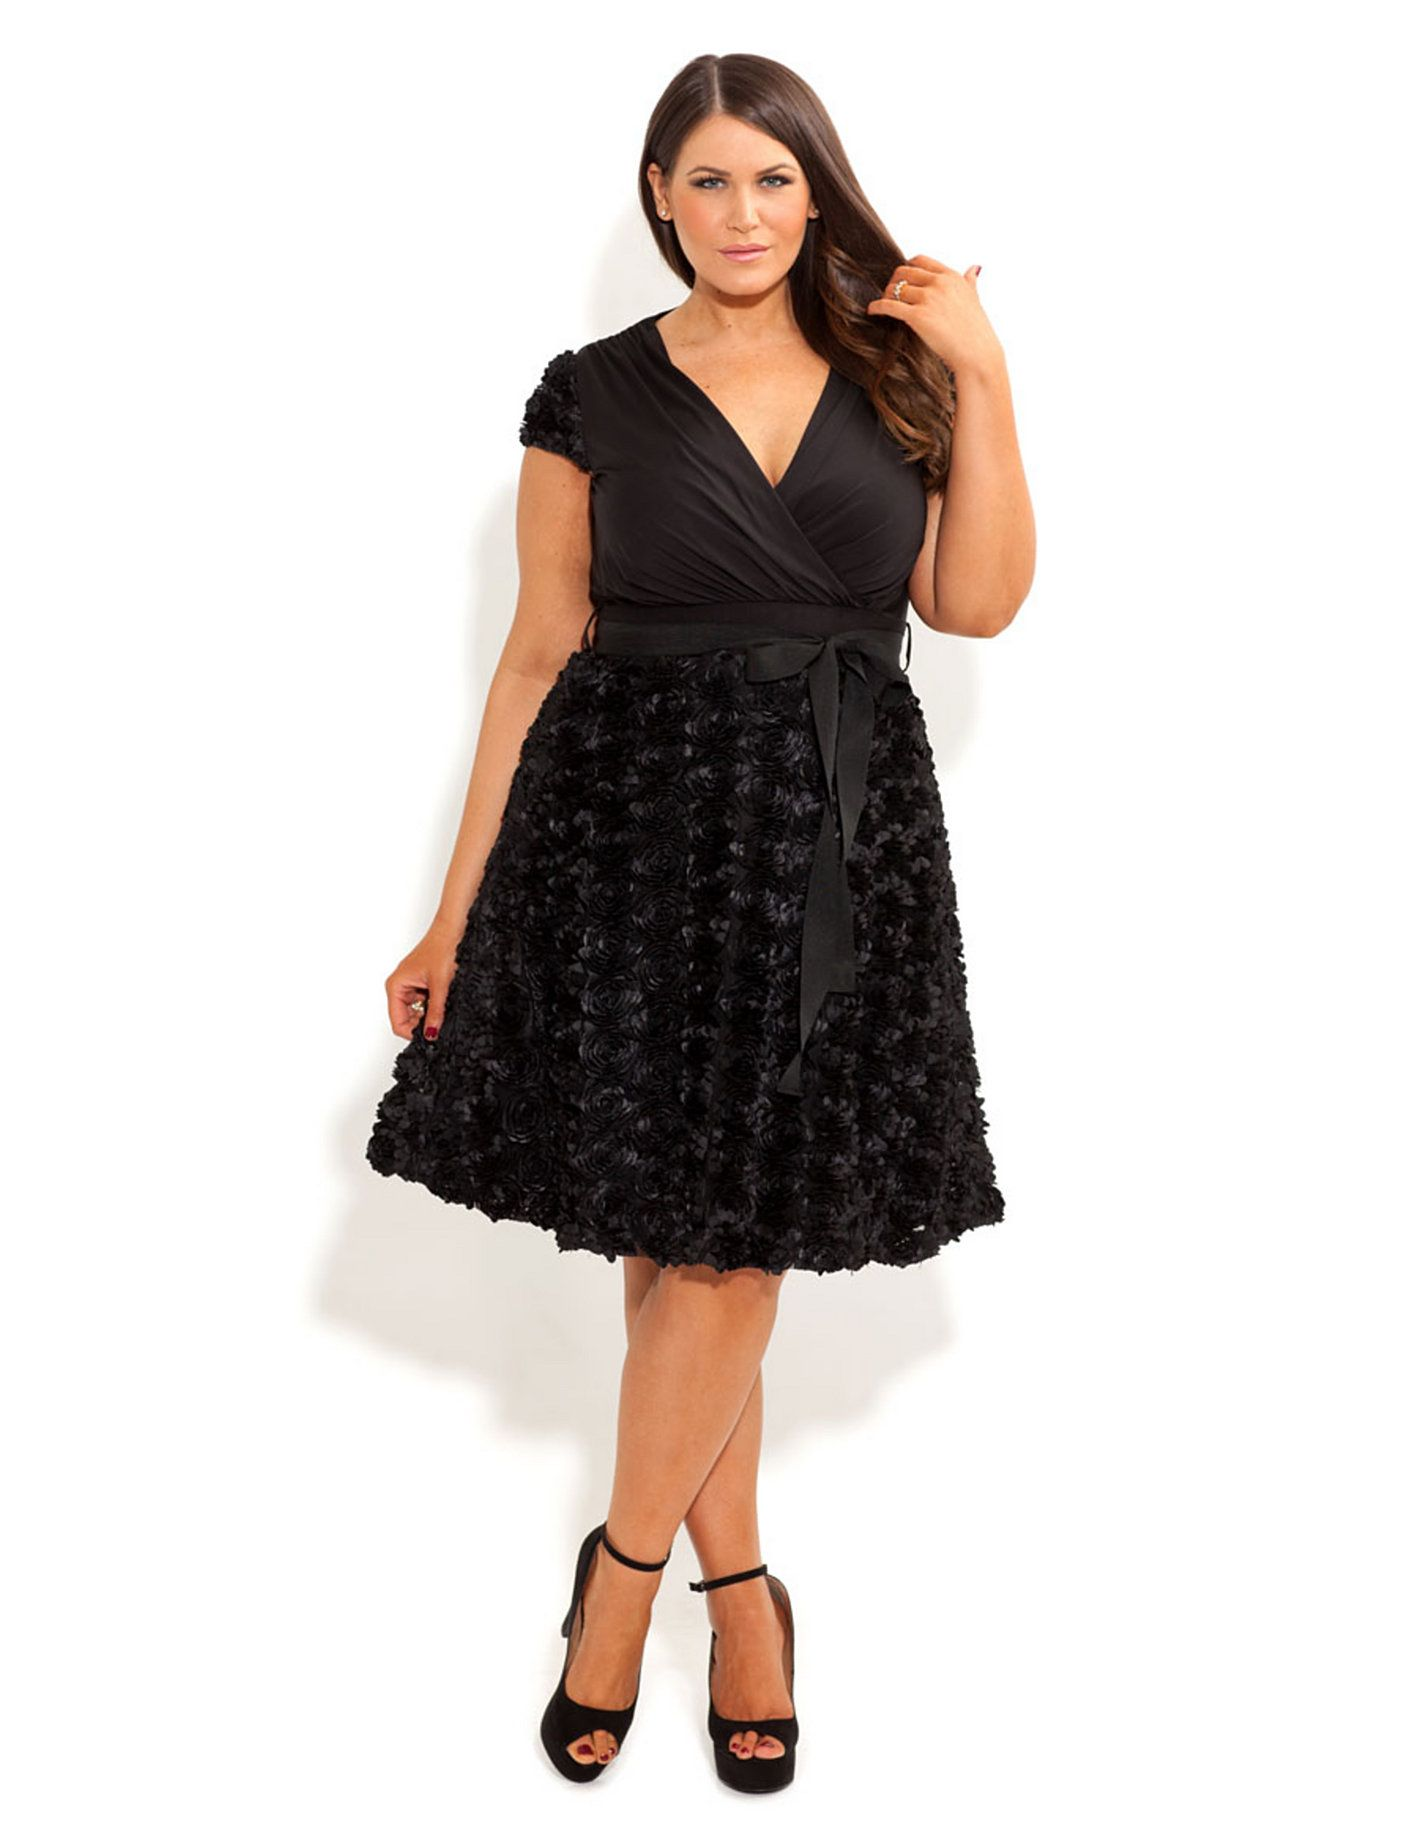 Plus size bridesmaid dresses dresses for wedding guests for Dress for plus size wedding guest